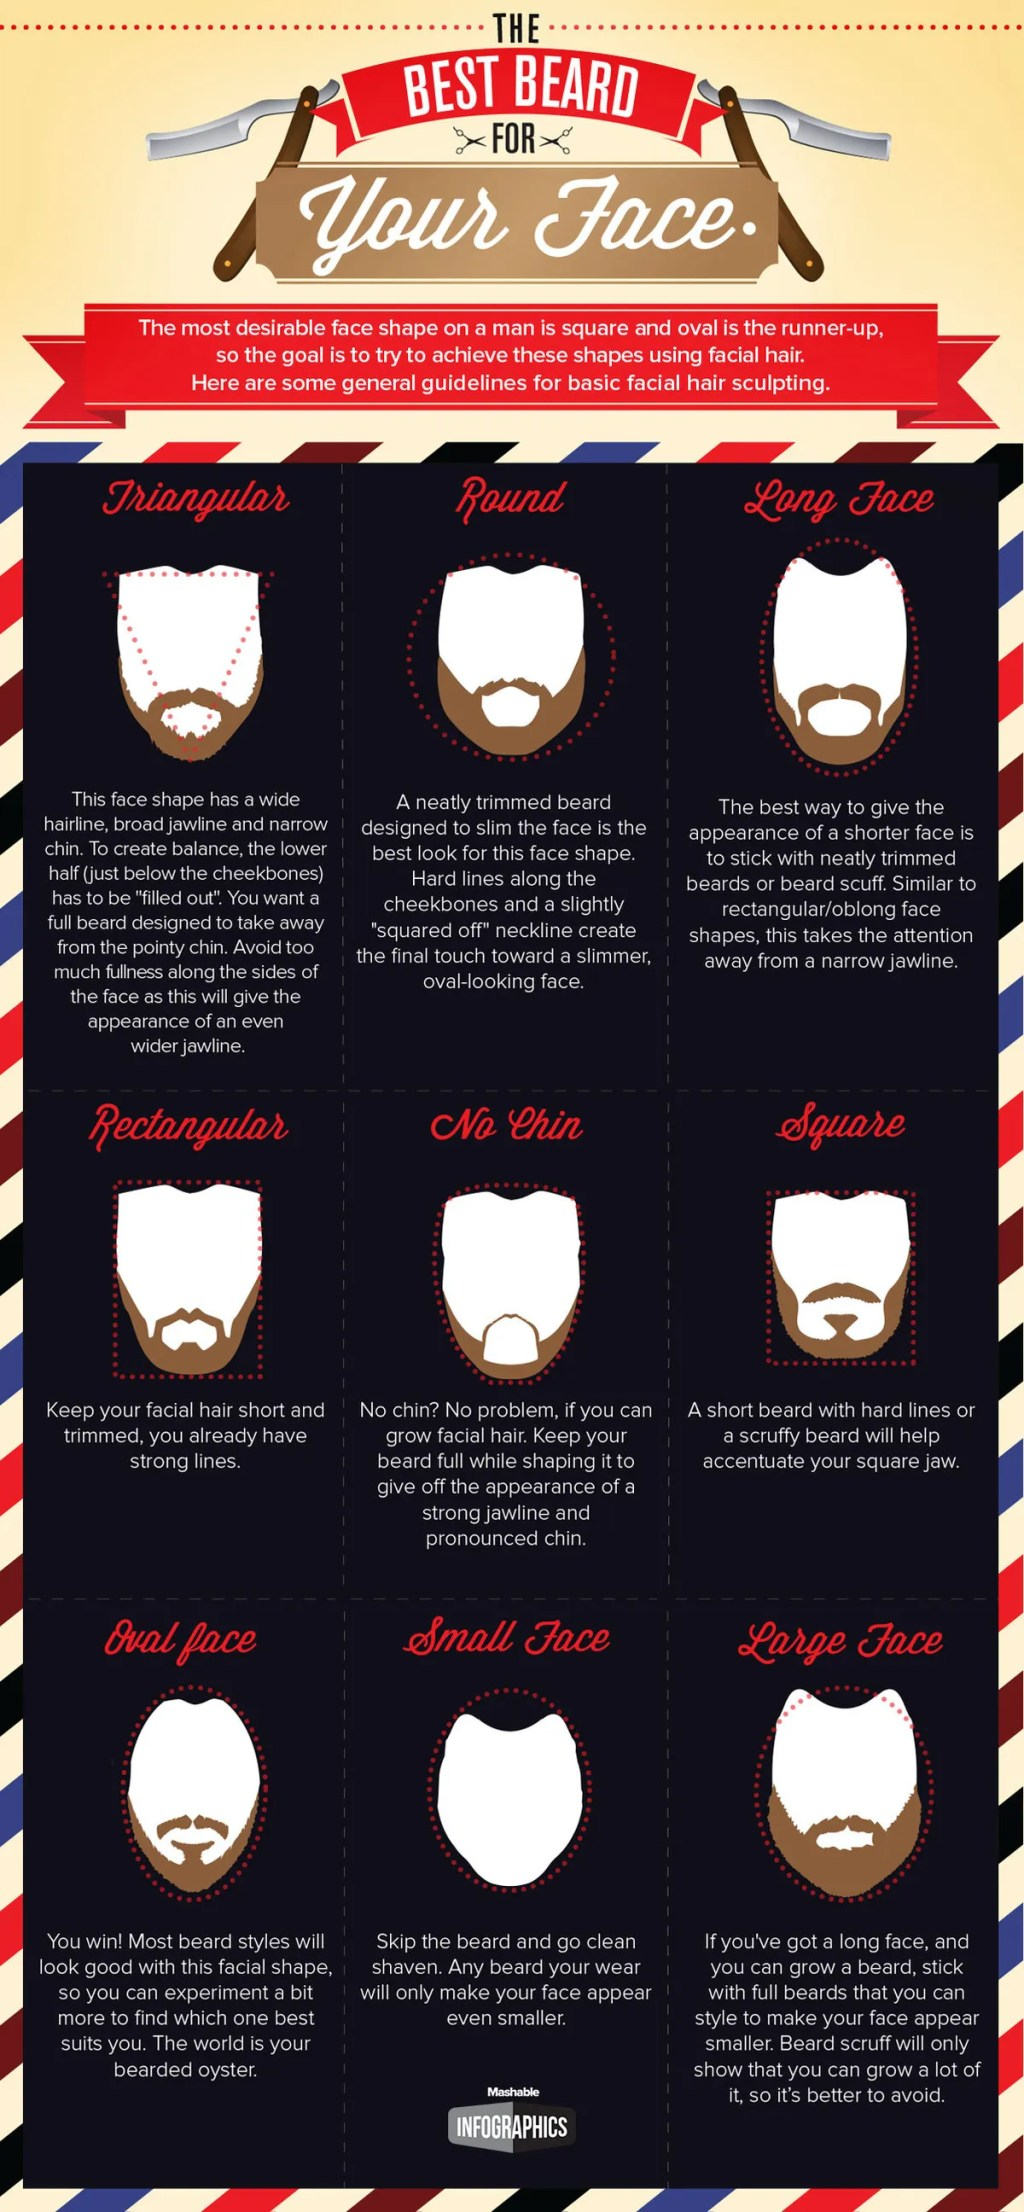 Find out what the best type of beard is for your face